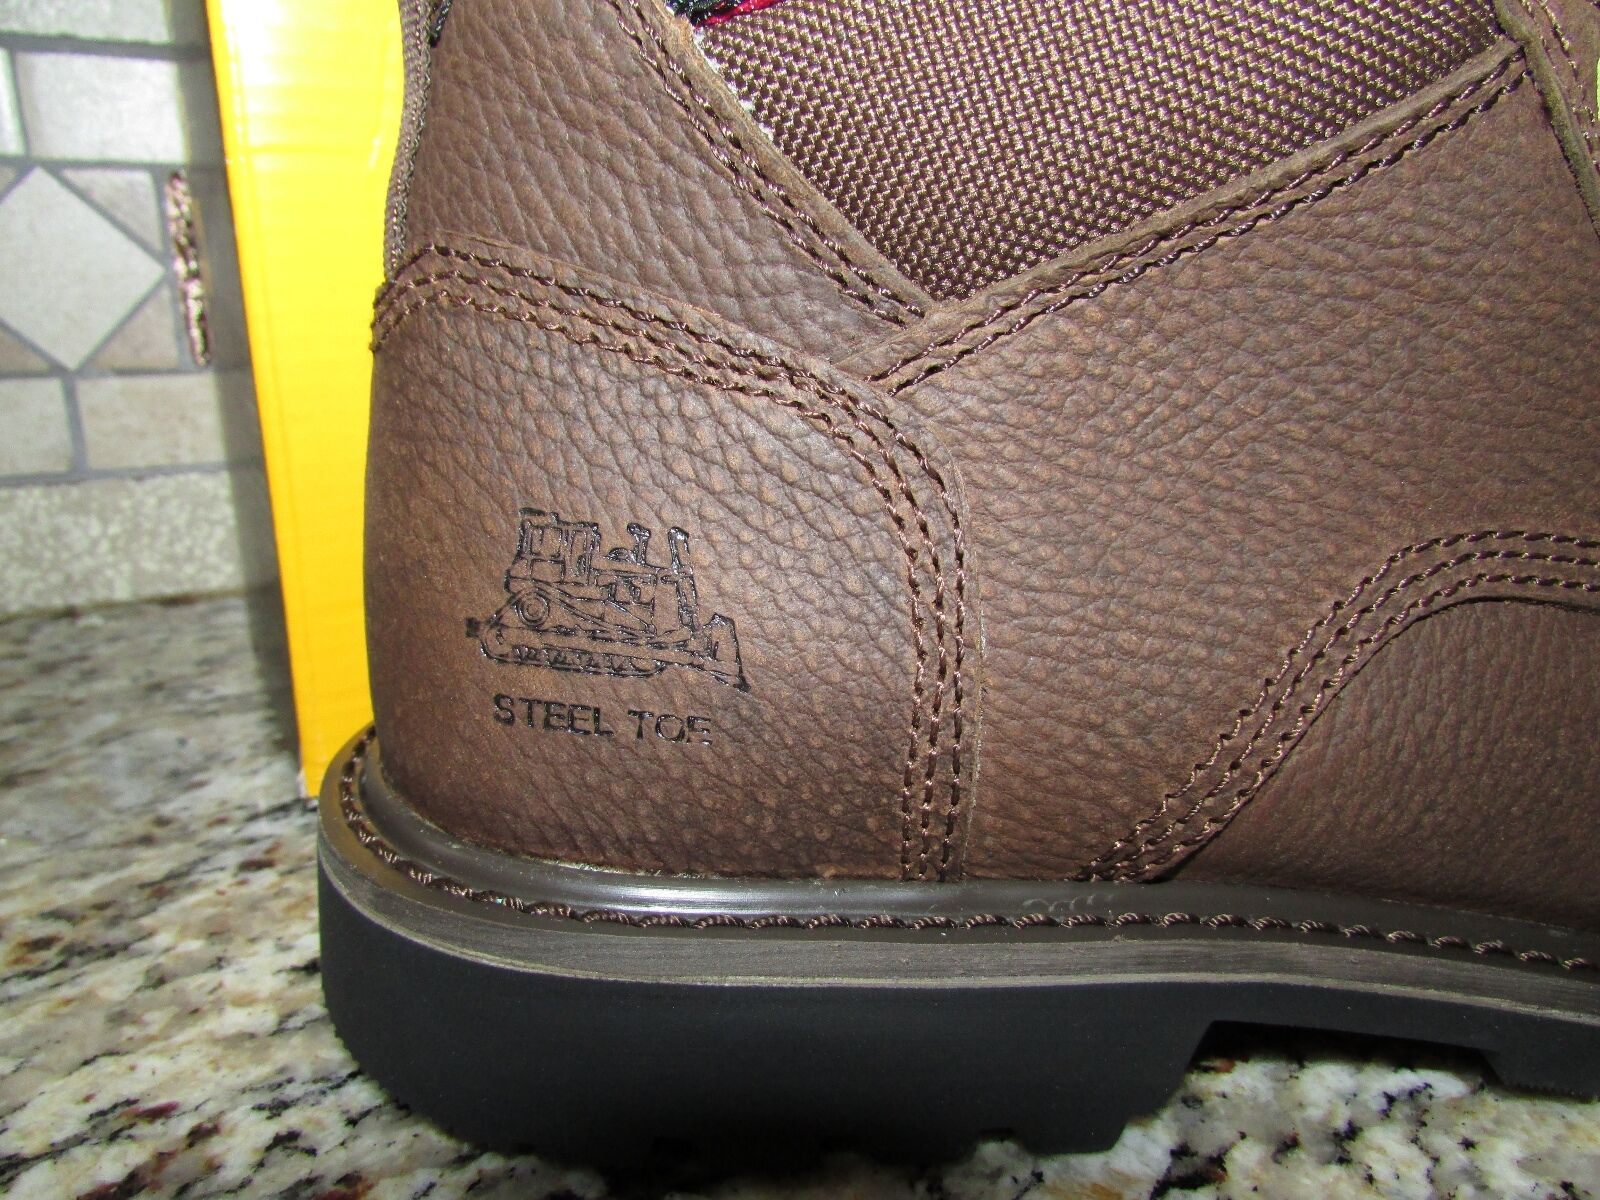 NEW CATERPILLAR CAT STEEL TOE WORK WORK WORK BOOTS Uomo 9.5 STYLE: ELECTRIC BROWN 0d3d9c